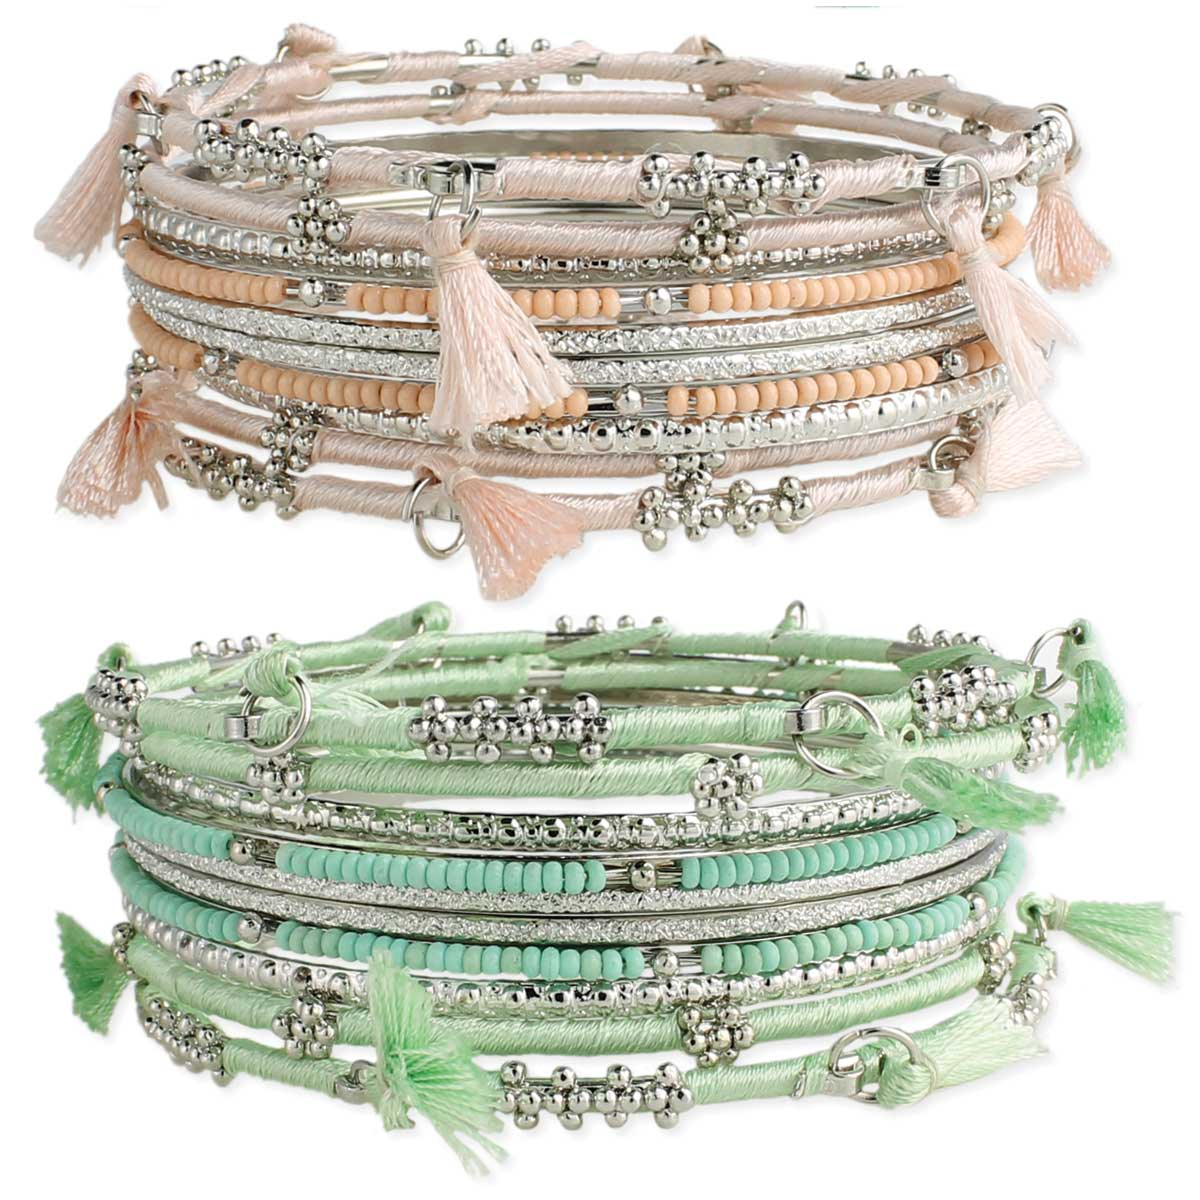 Thread Wrapped Silver Bangle Bracelet Set with Tassels